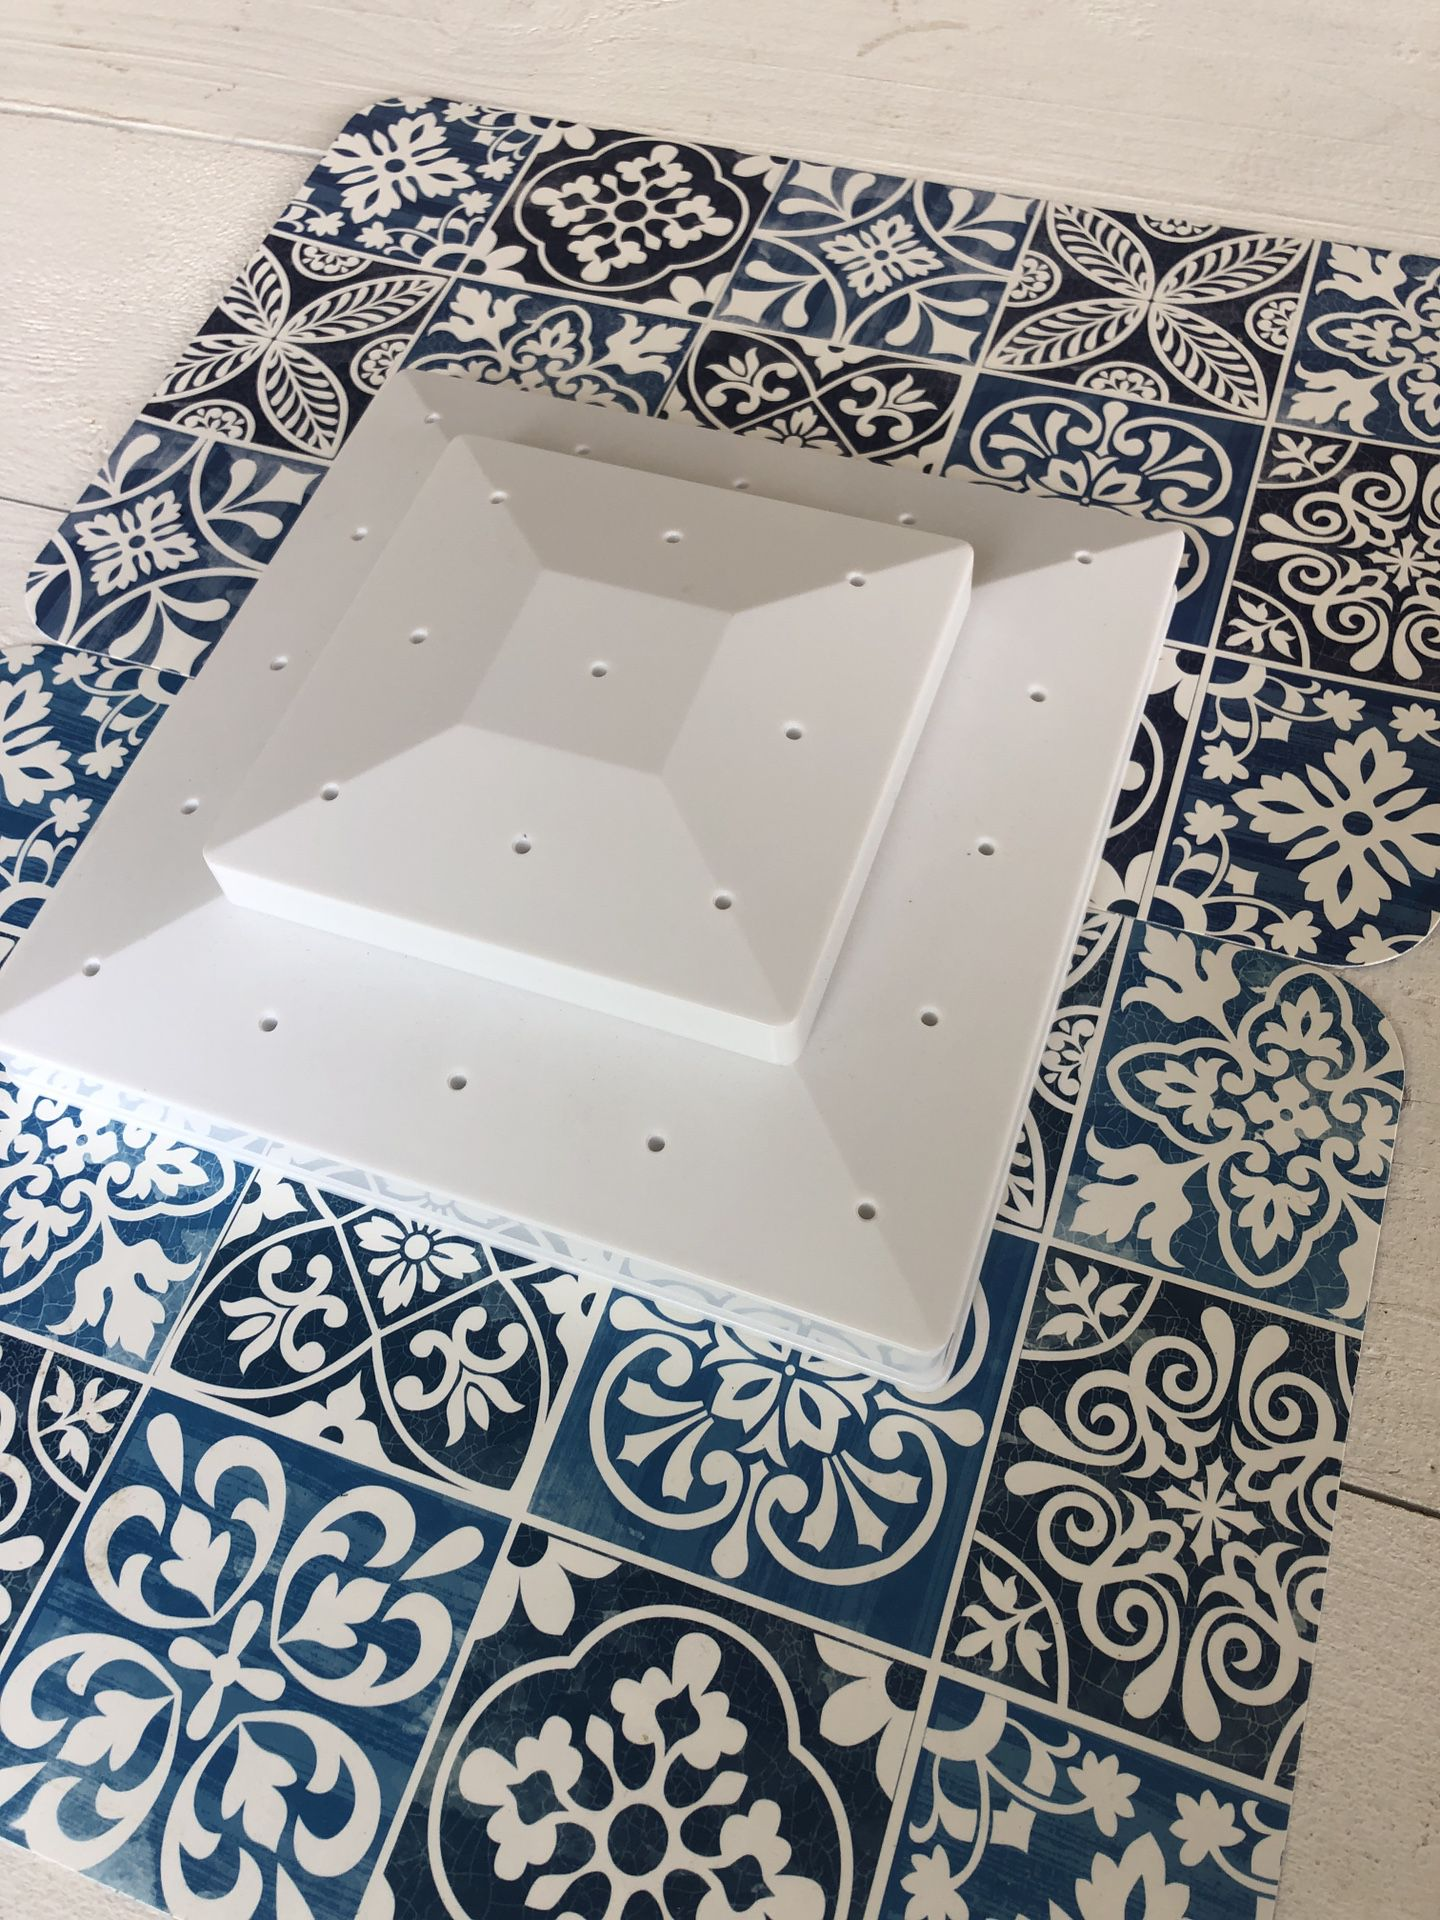 SQUARE Cake Pop Stand - used once